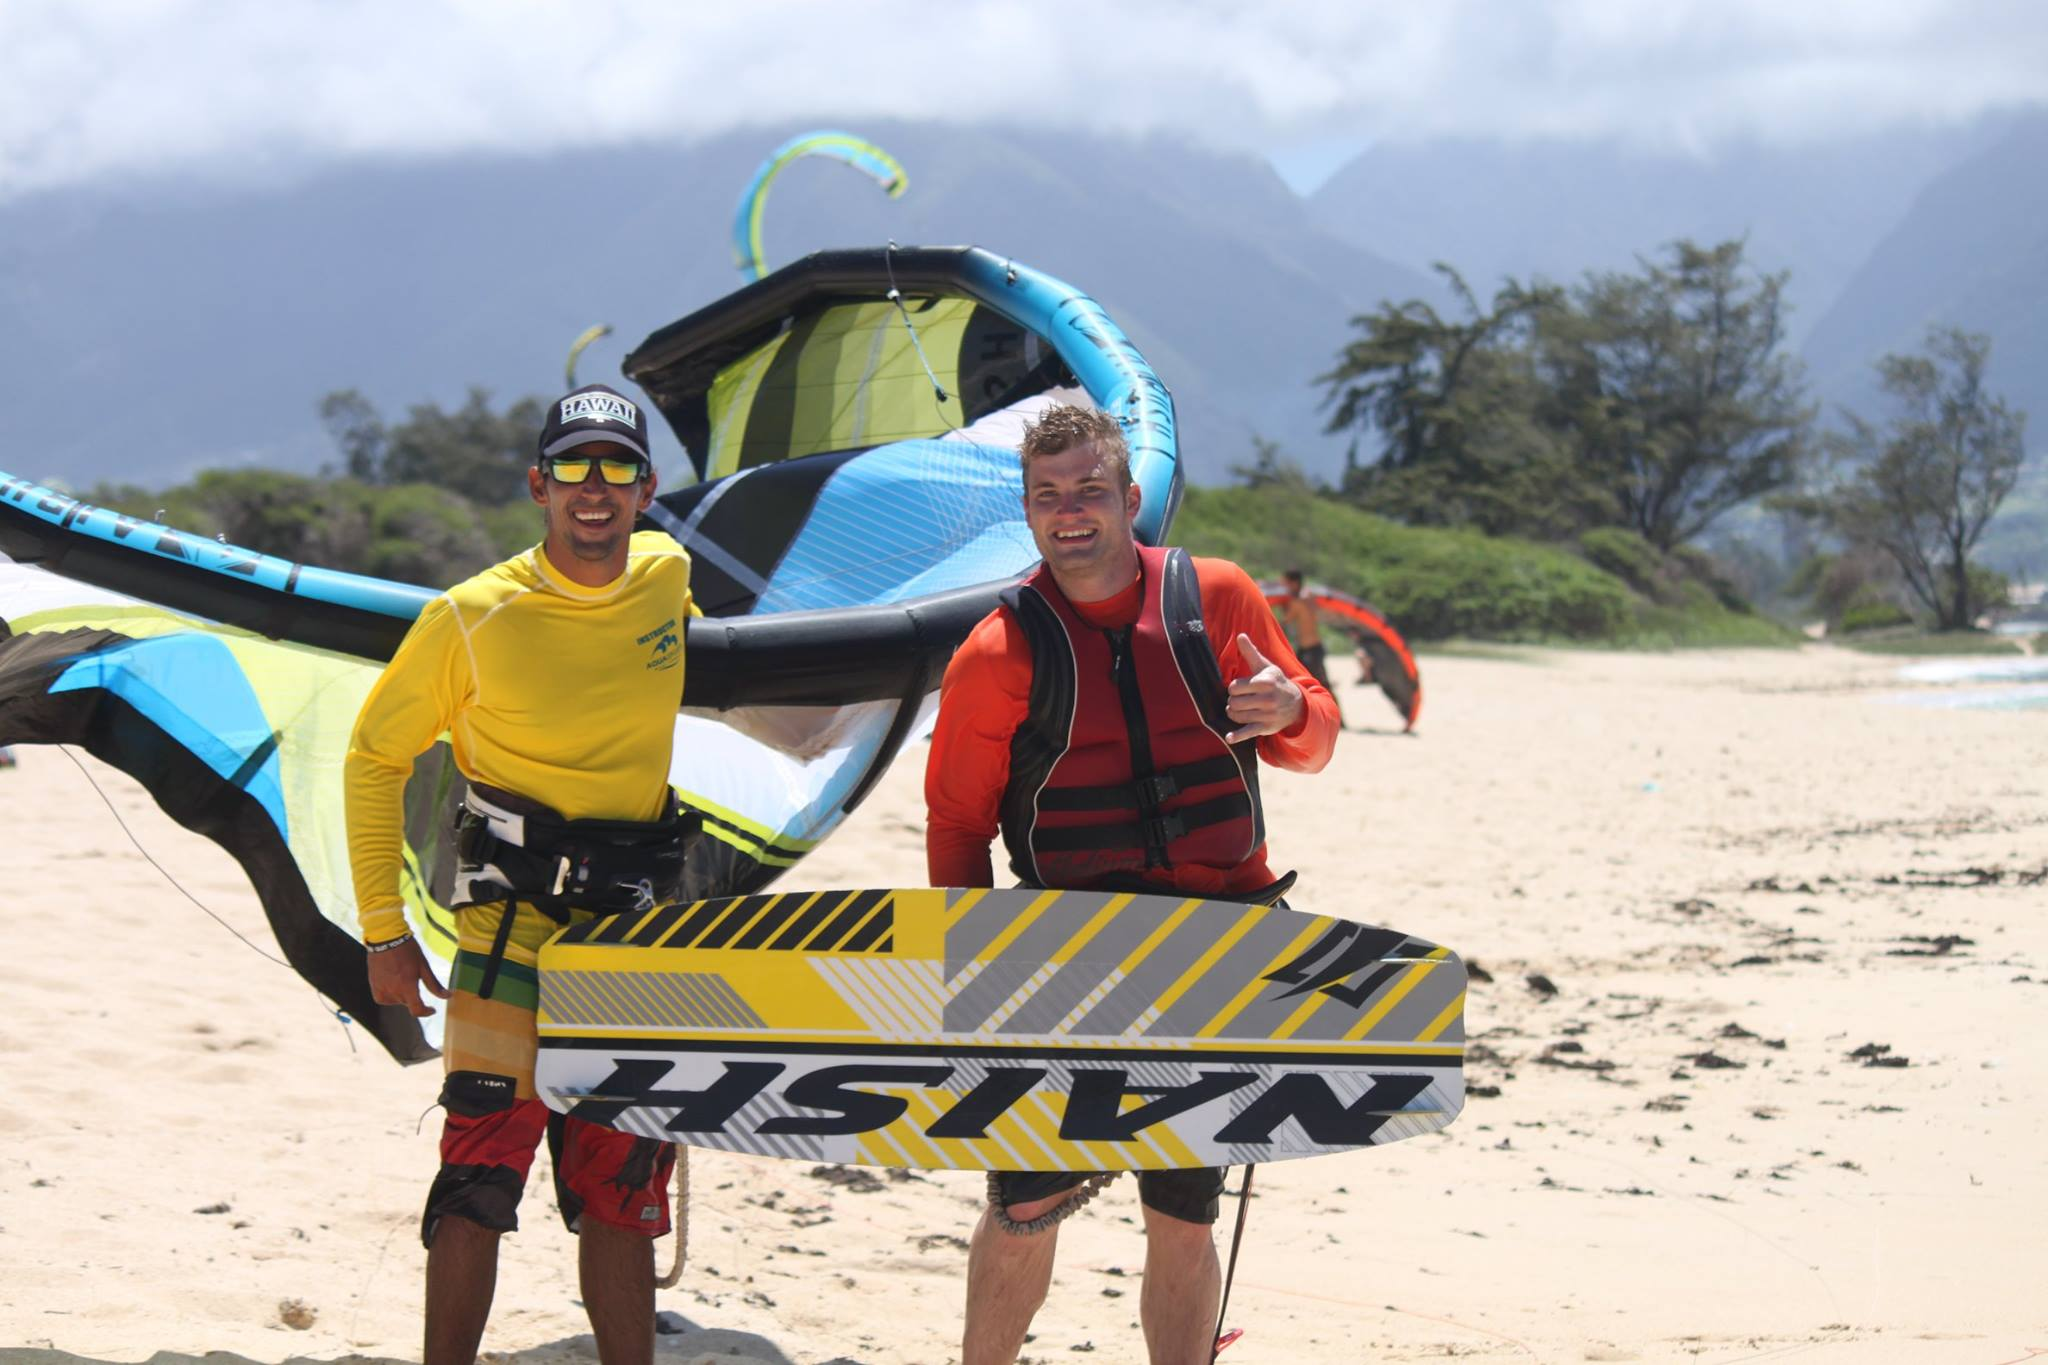 maui kite boarding lessons instructor Jayeson with student 2